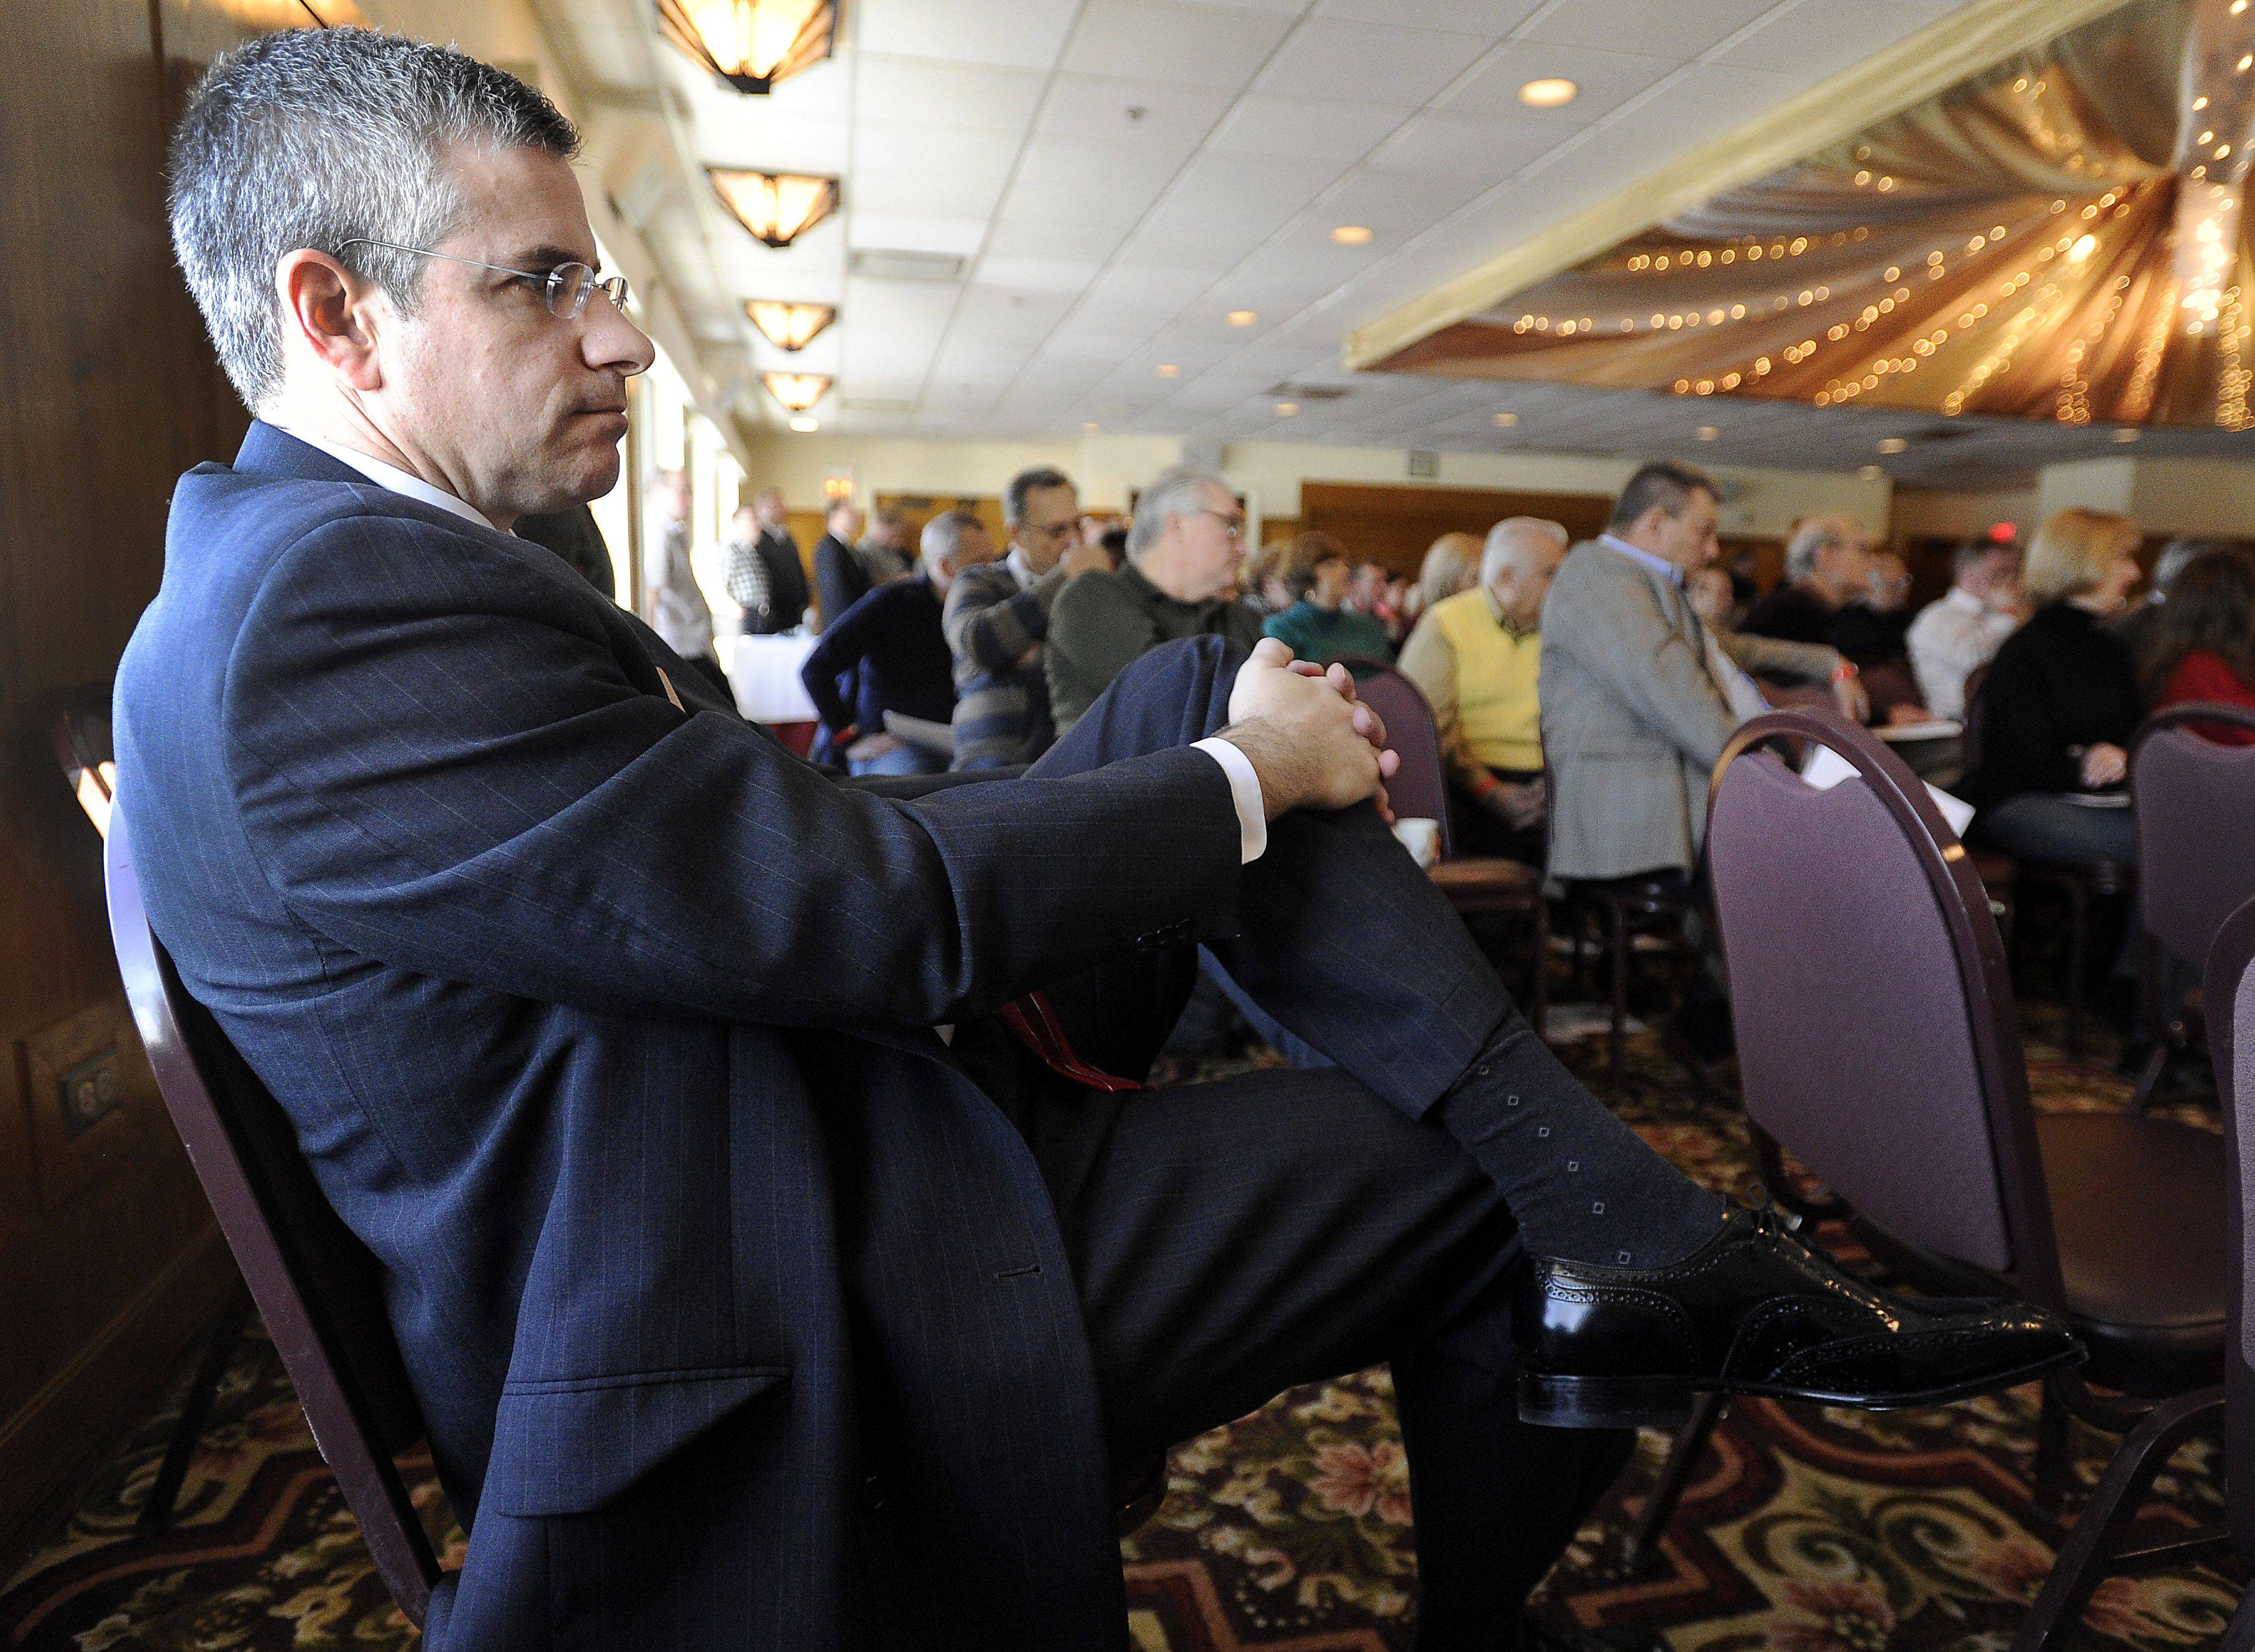 Dan Patlak, an incumbent on the Cook County Board of Review, waits his turn to speak to the overflow crowd at the Schaumburg Township Republican Convention on Saturday.